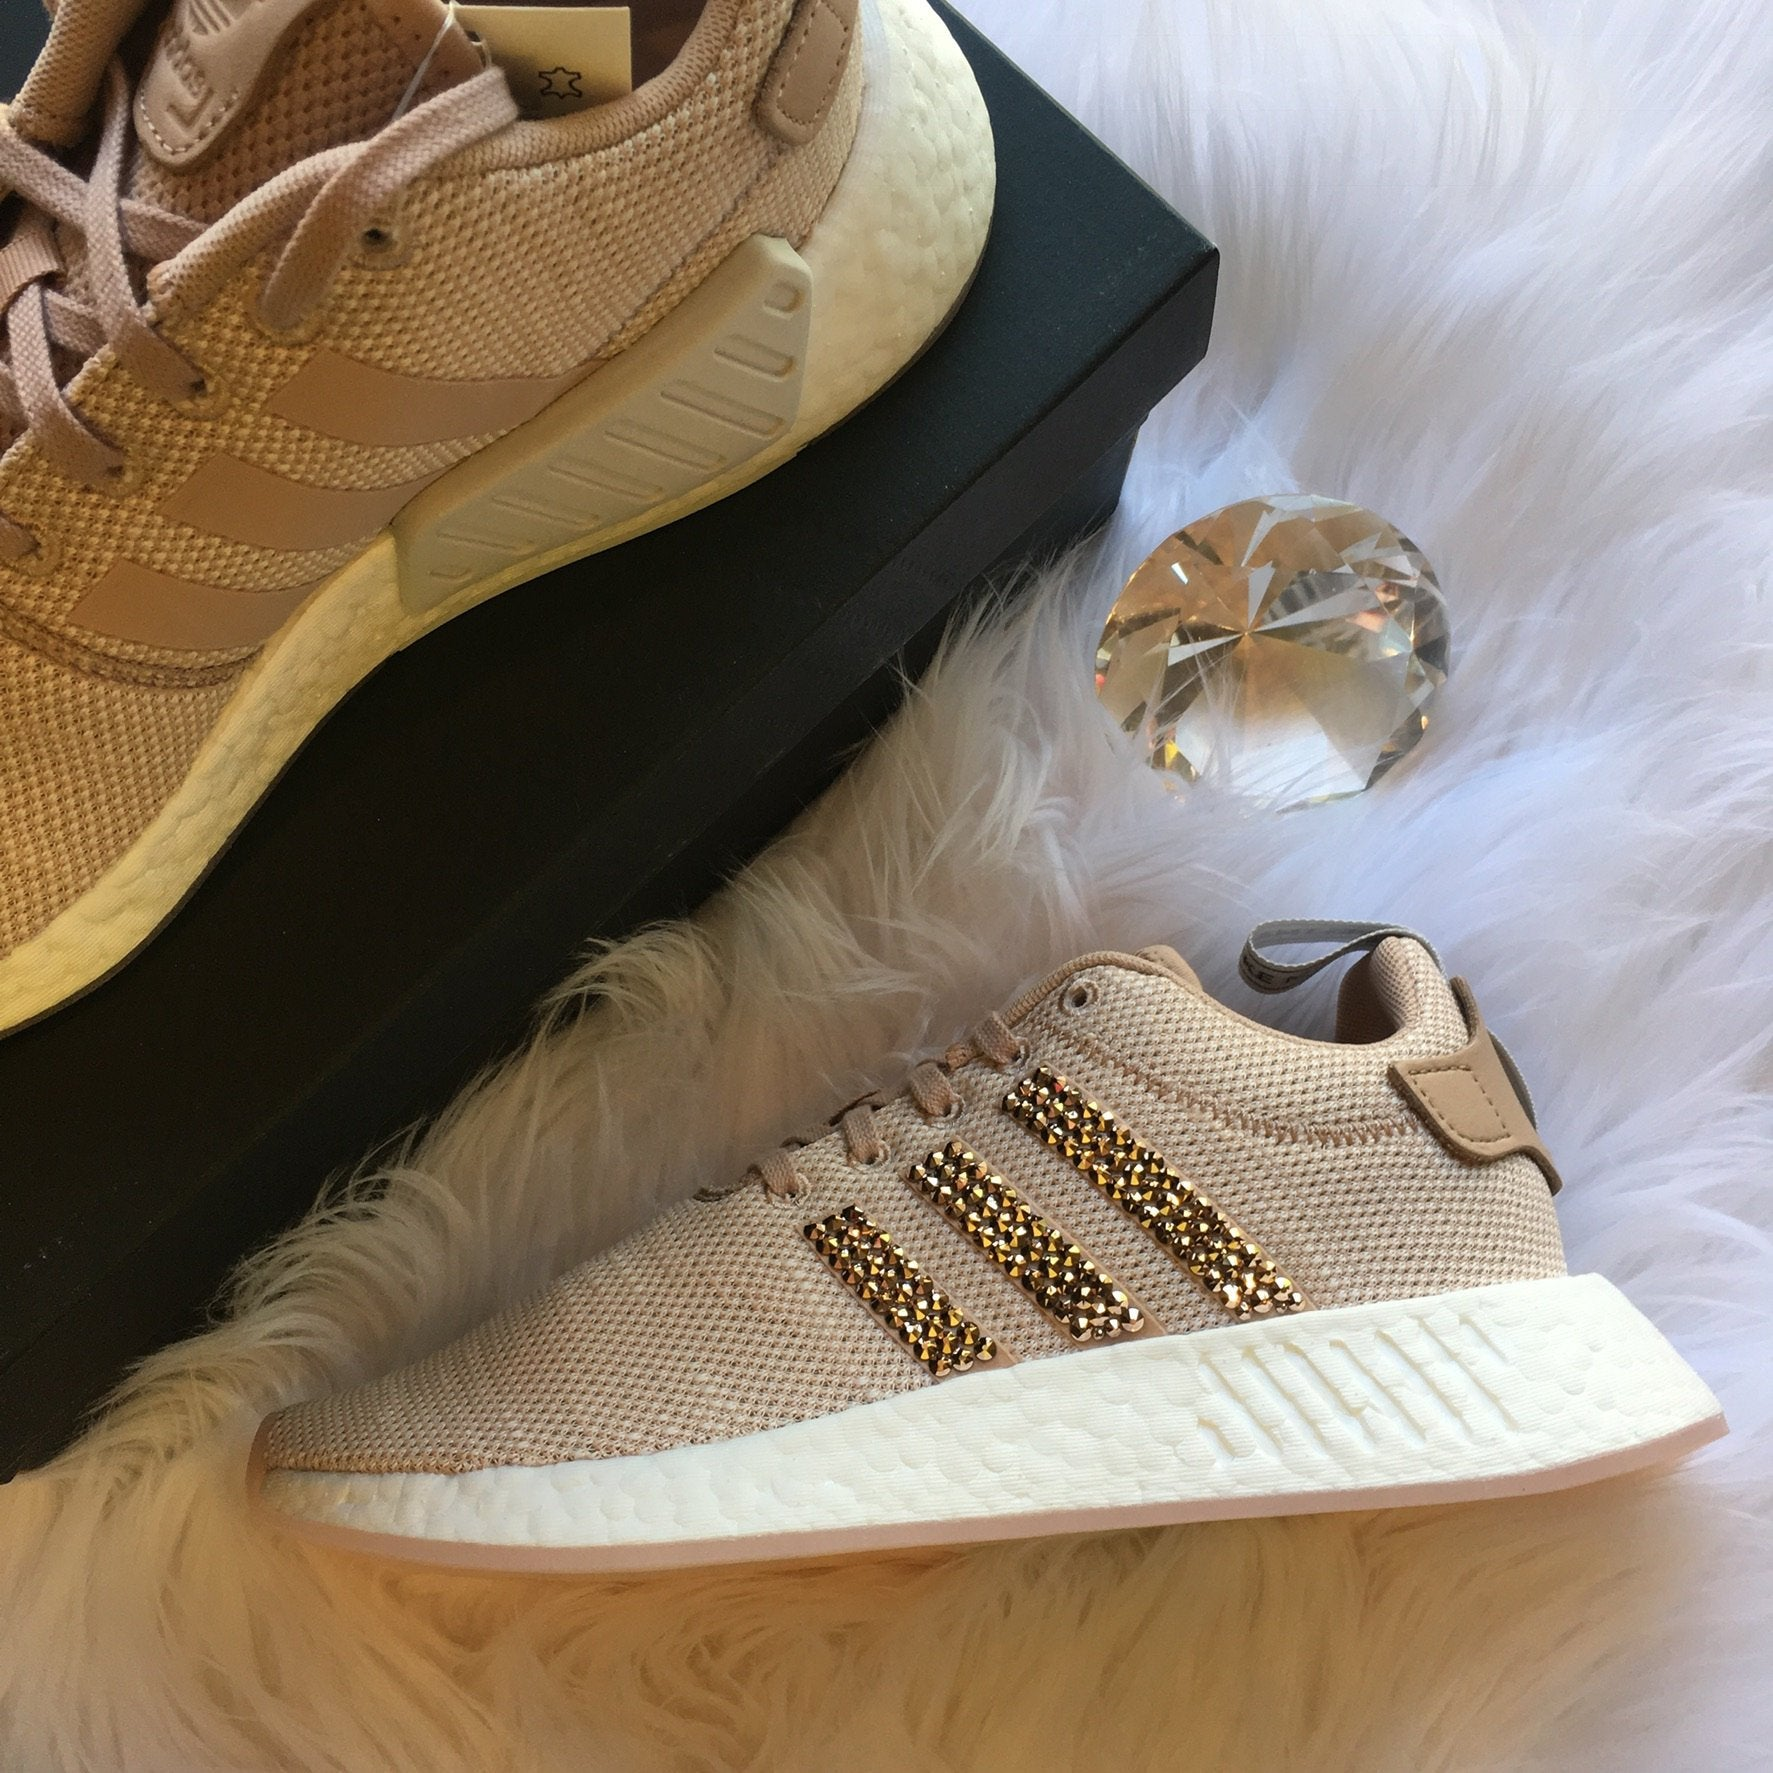 3e669c36c5808 ROSE GOLD Bling Adidas NMD with Swarovski Crystals - Bedazzled Womens  Originals NMDR2  WhitePink shoes Adidas NMD Runner ...